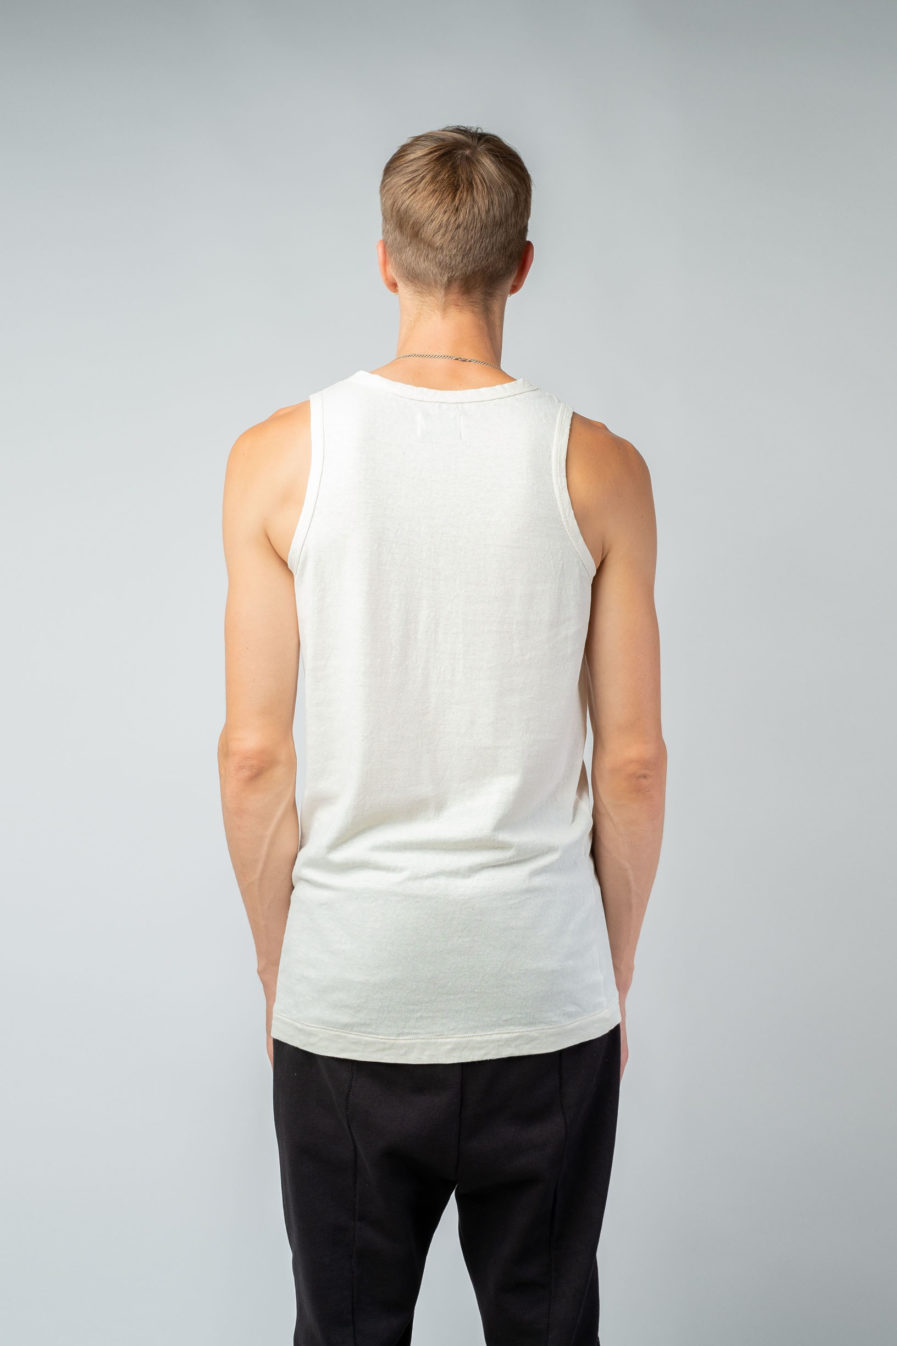 MAN unisex singlet tanktop hemp organic cotton FRANS Blank canvas back